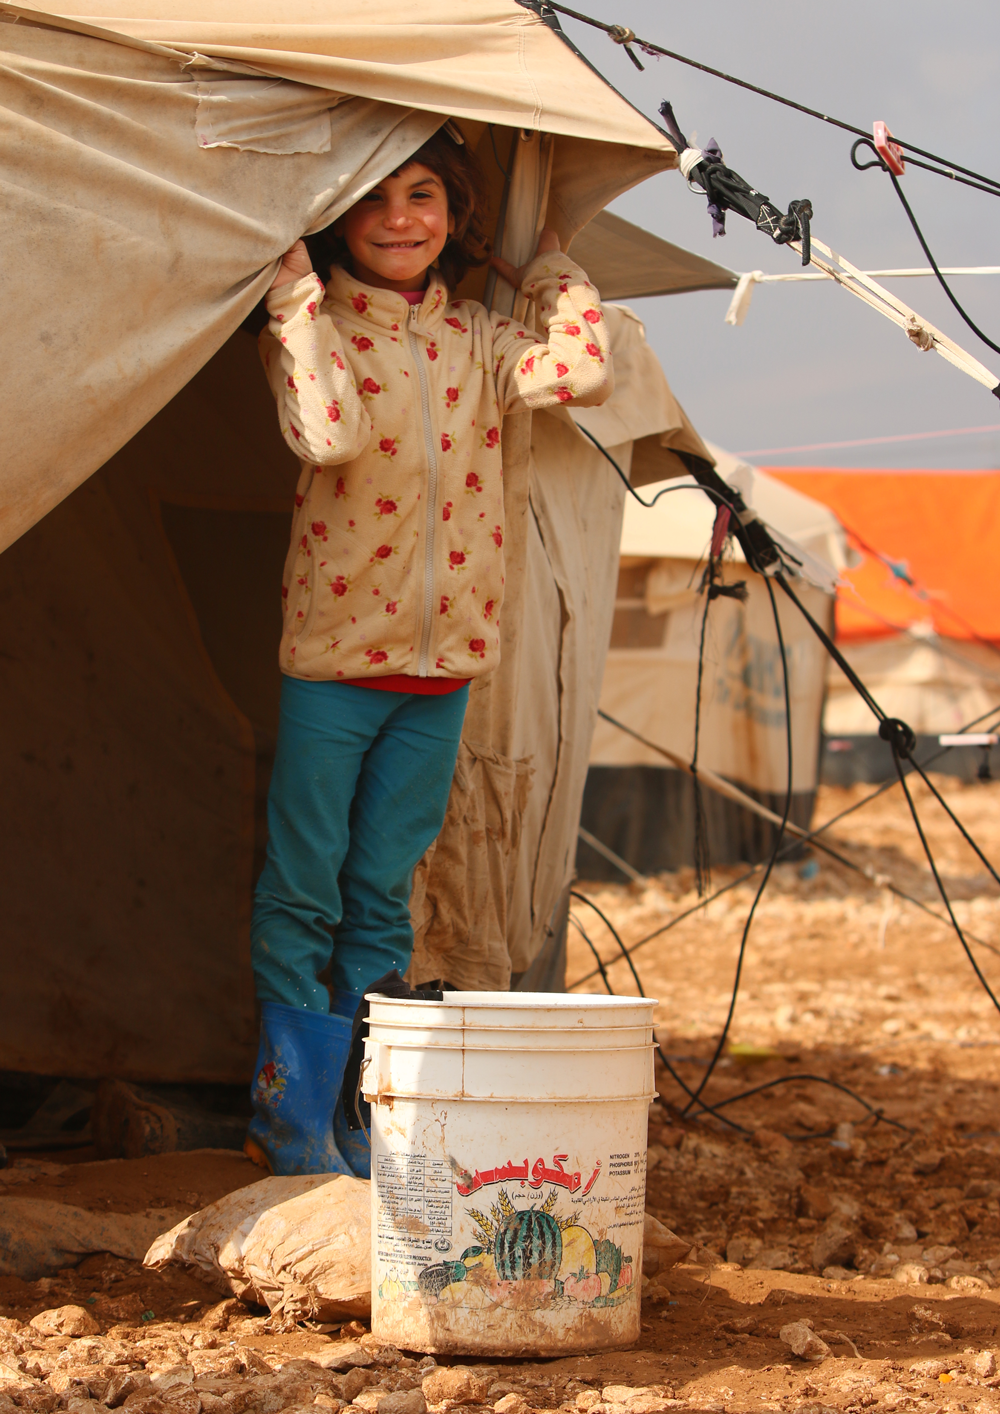 Syrian refugee girl tent